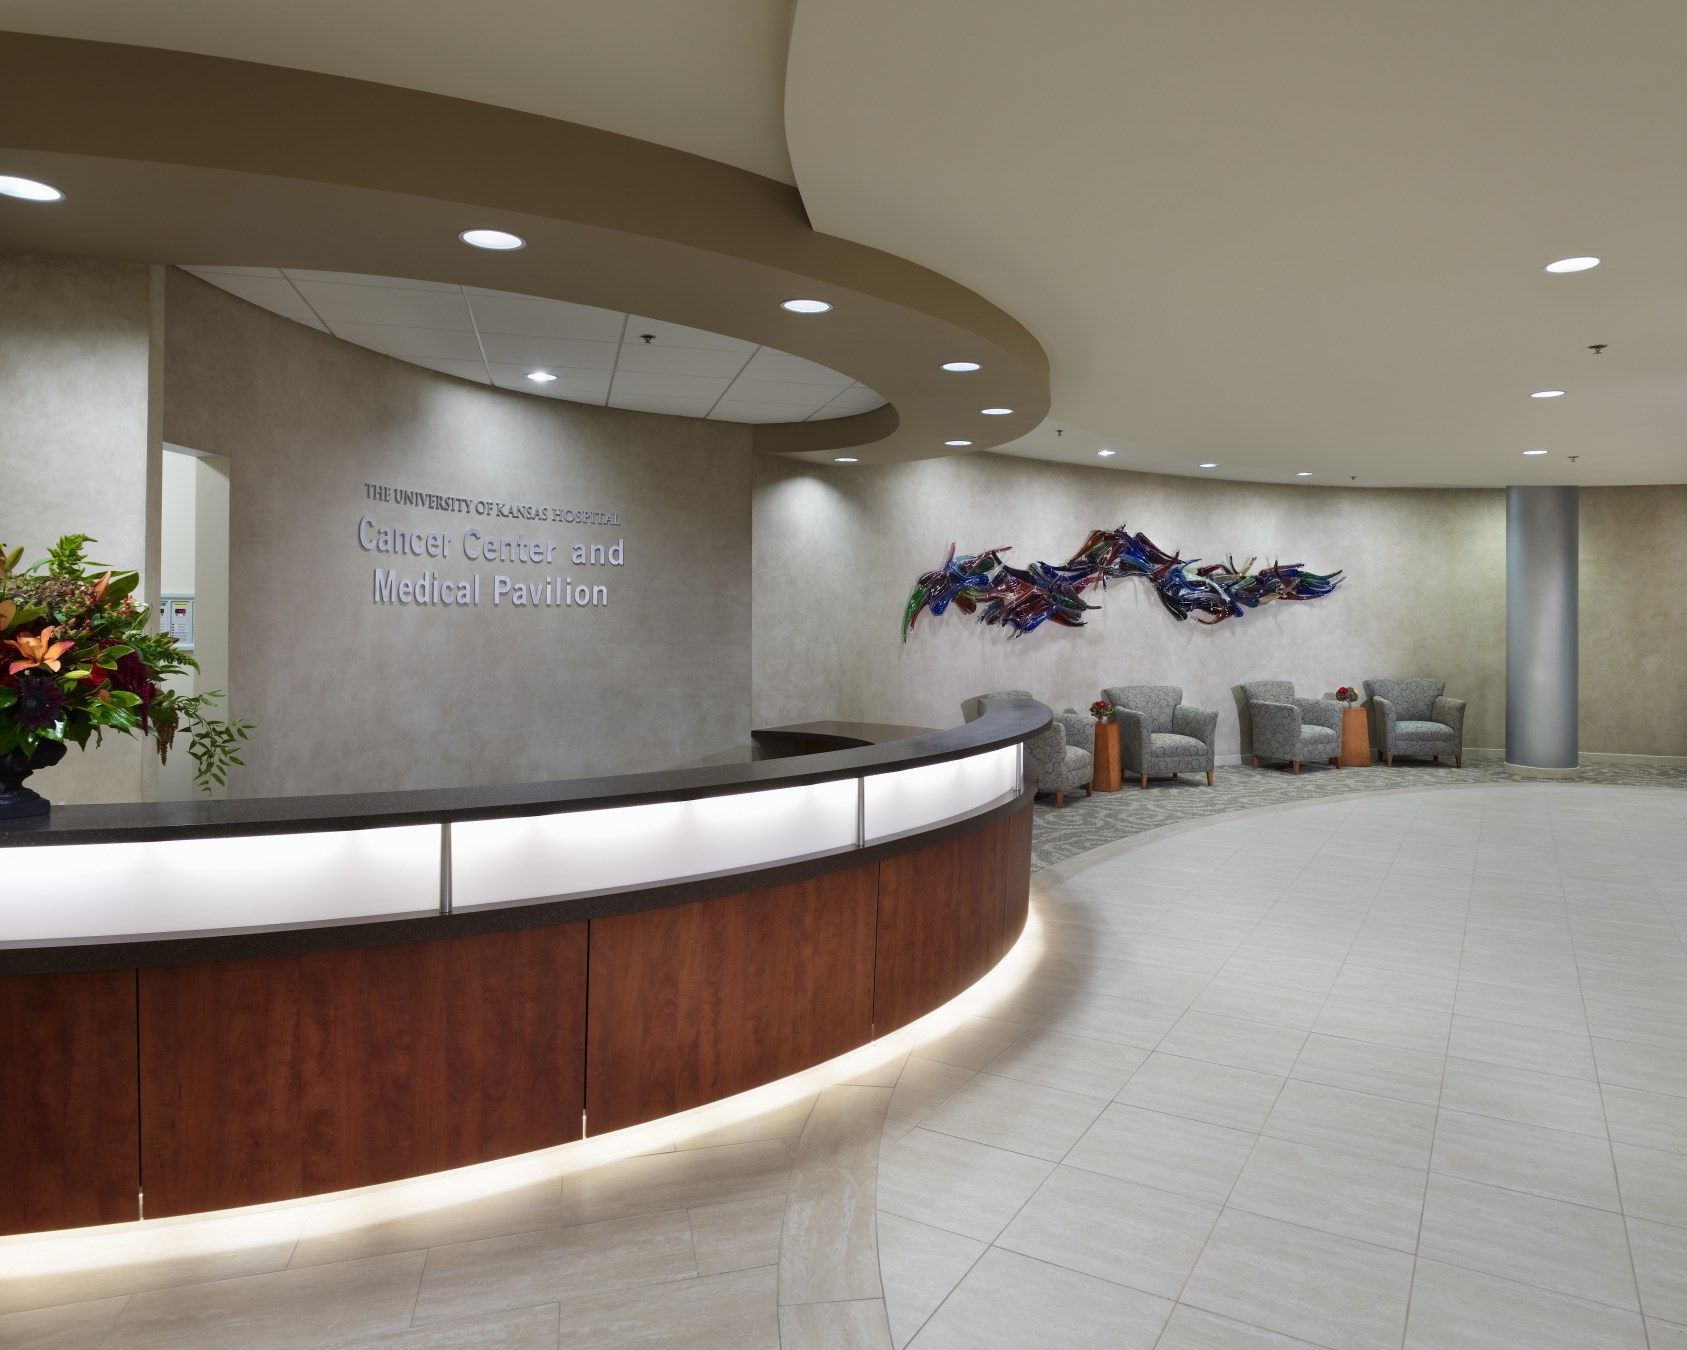 Westwood Cancer Center